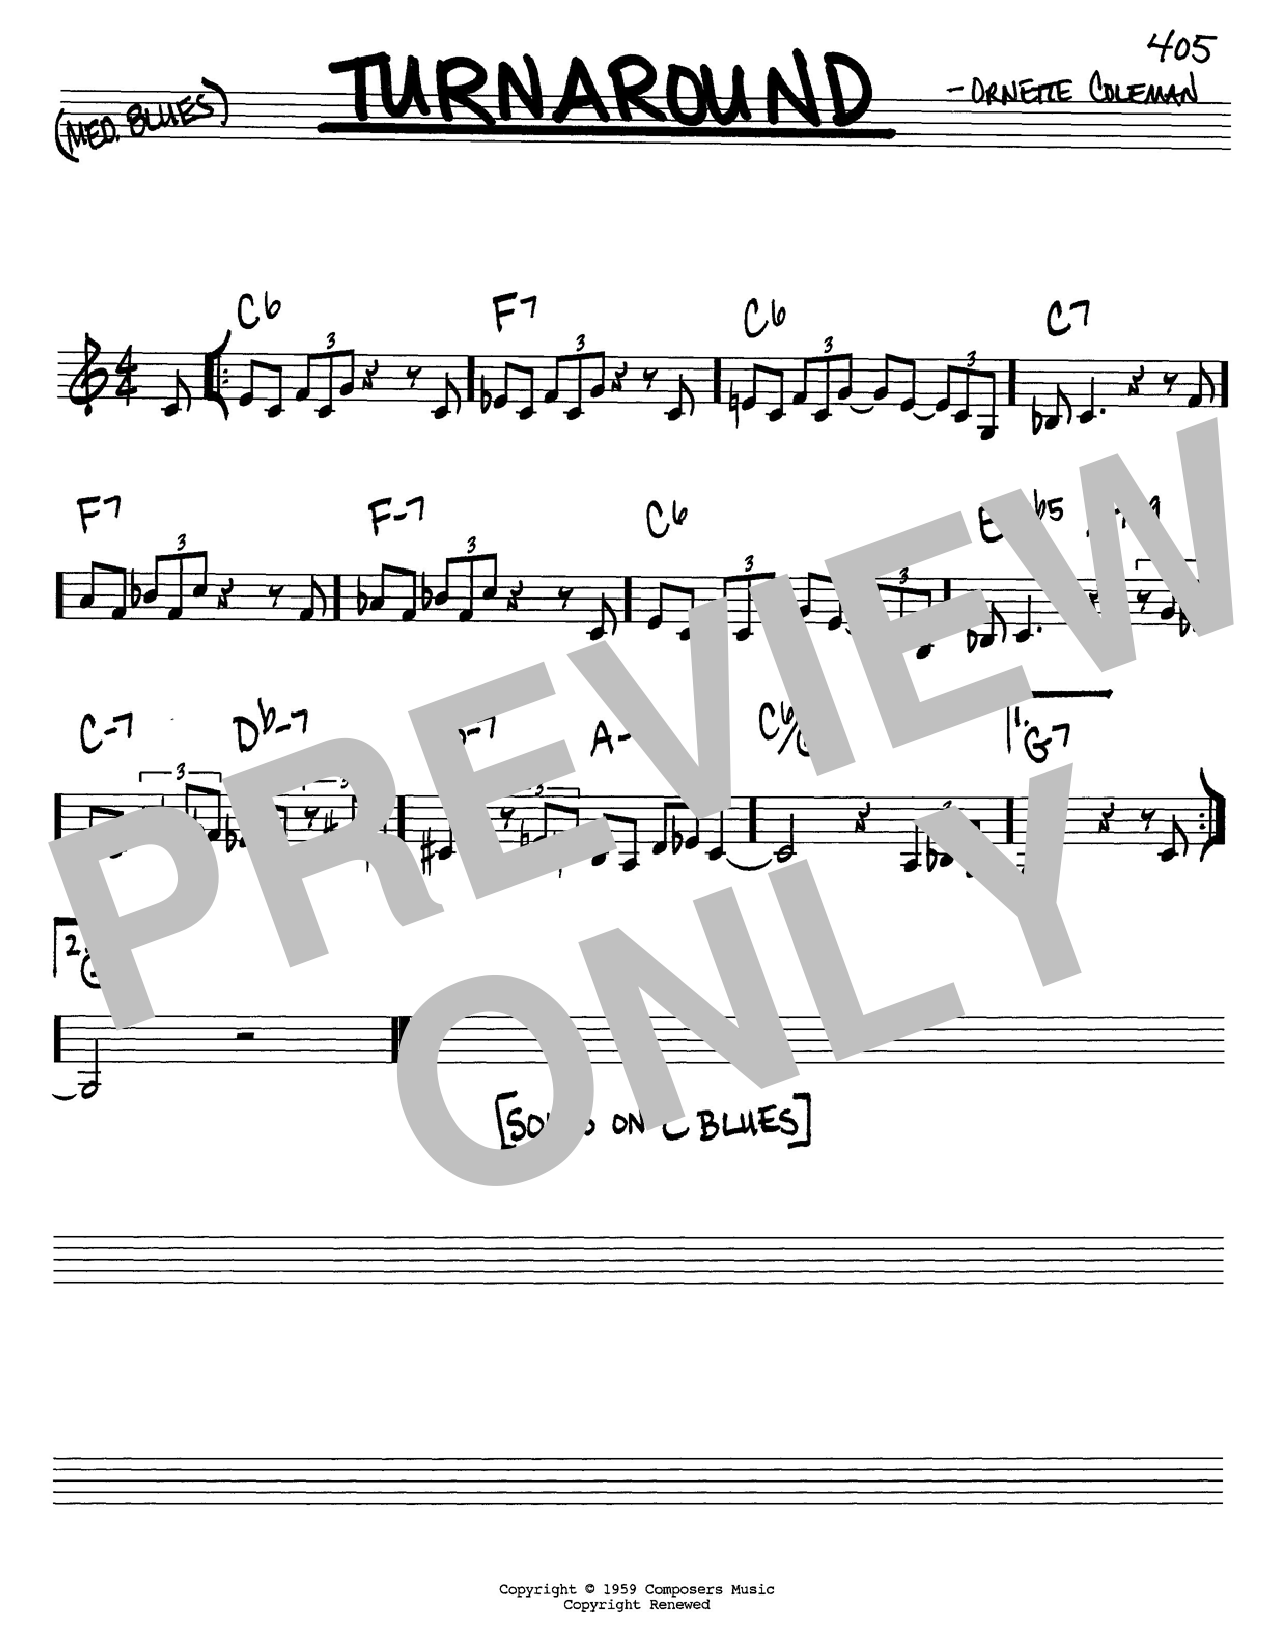 Ornette Coleman Turnaround sheet music notes and chords